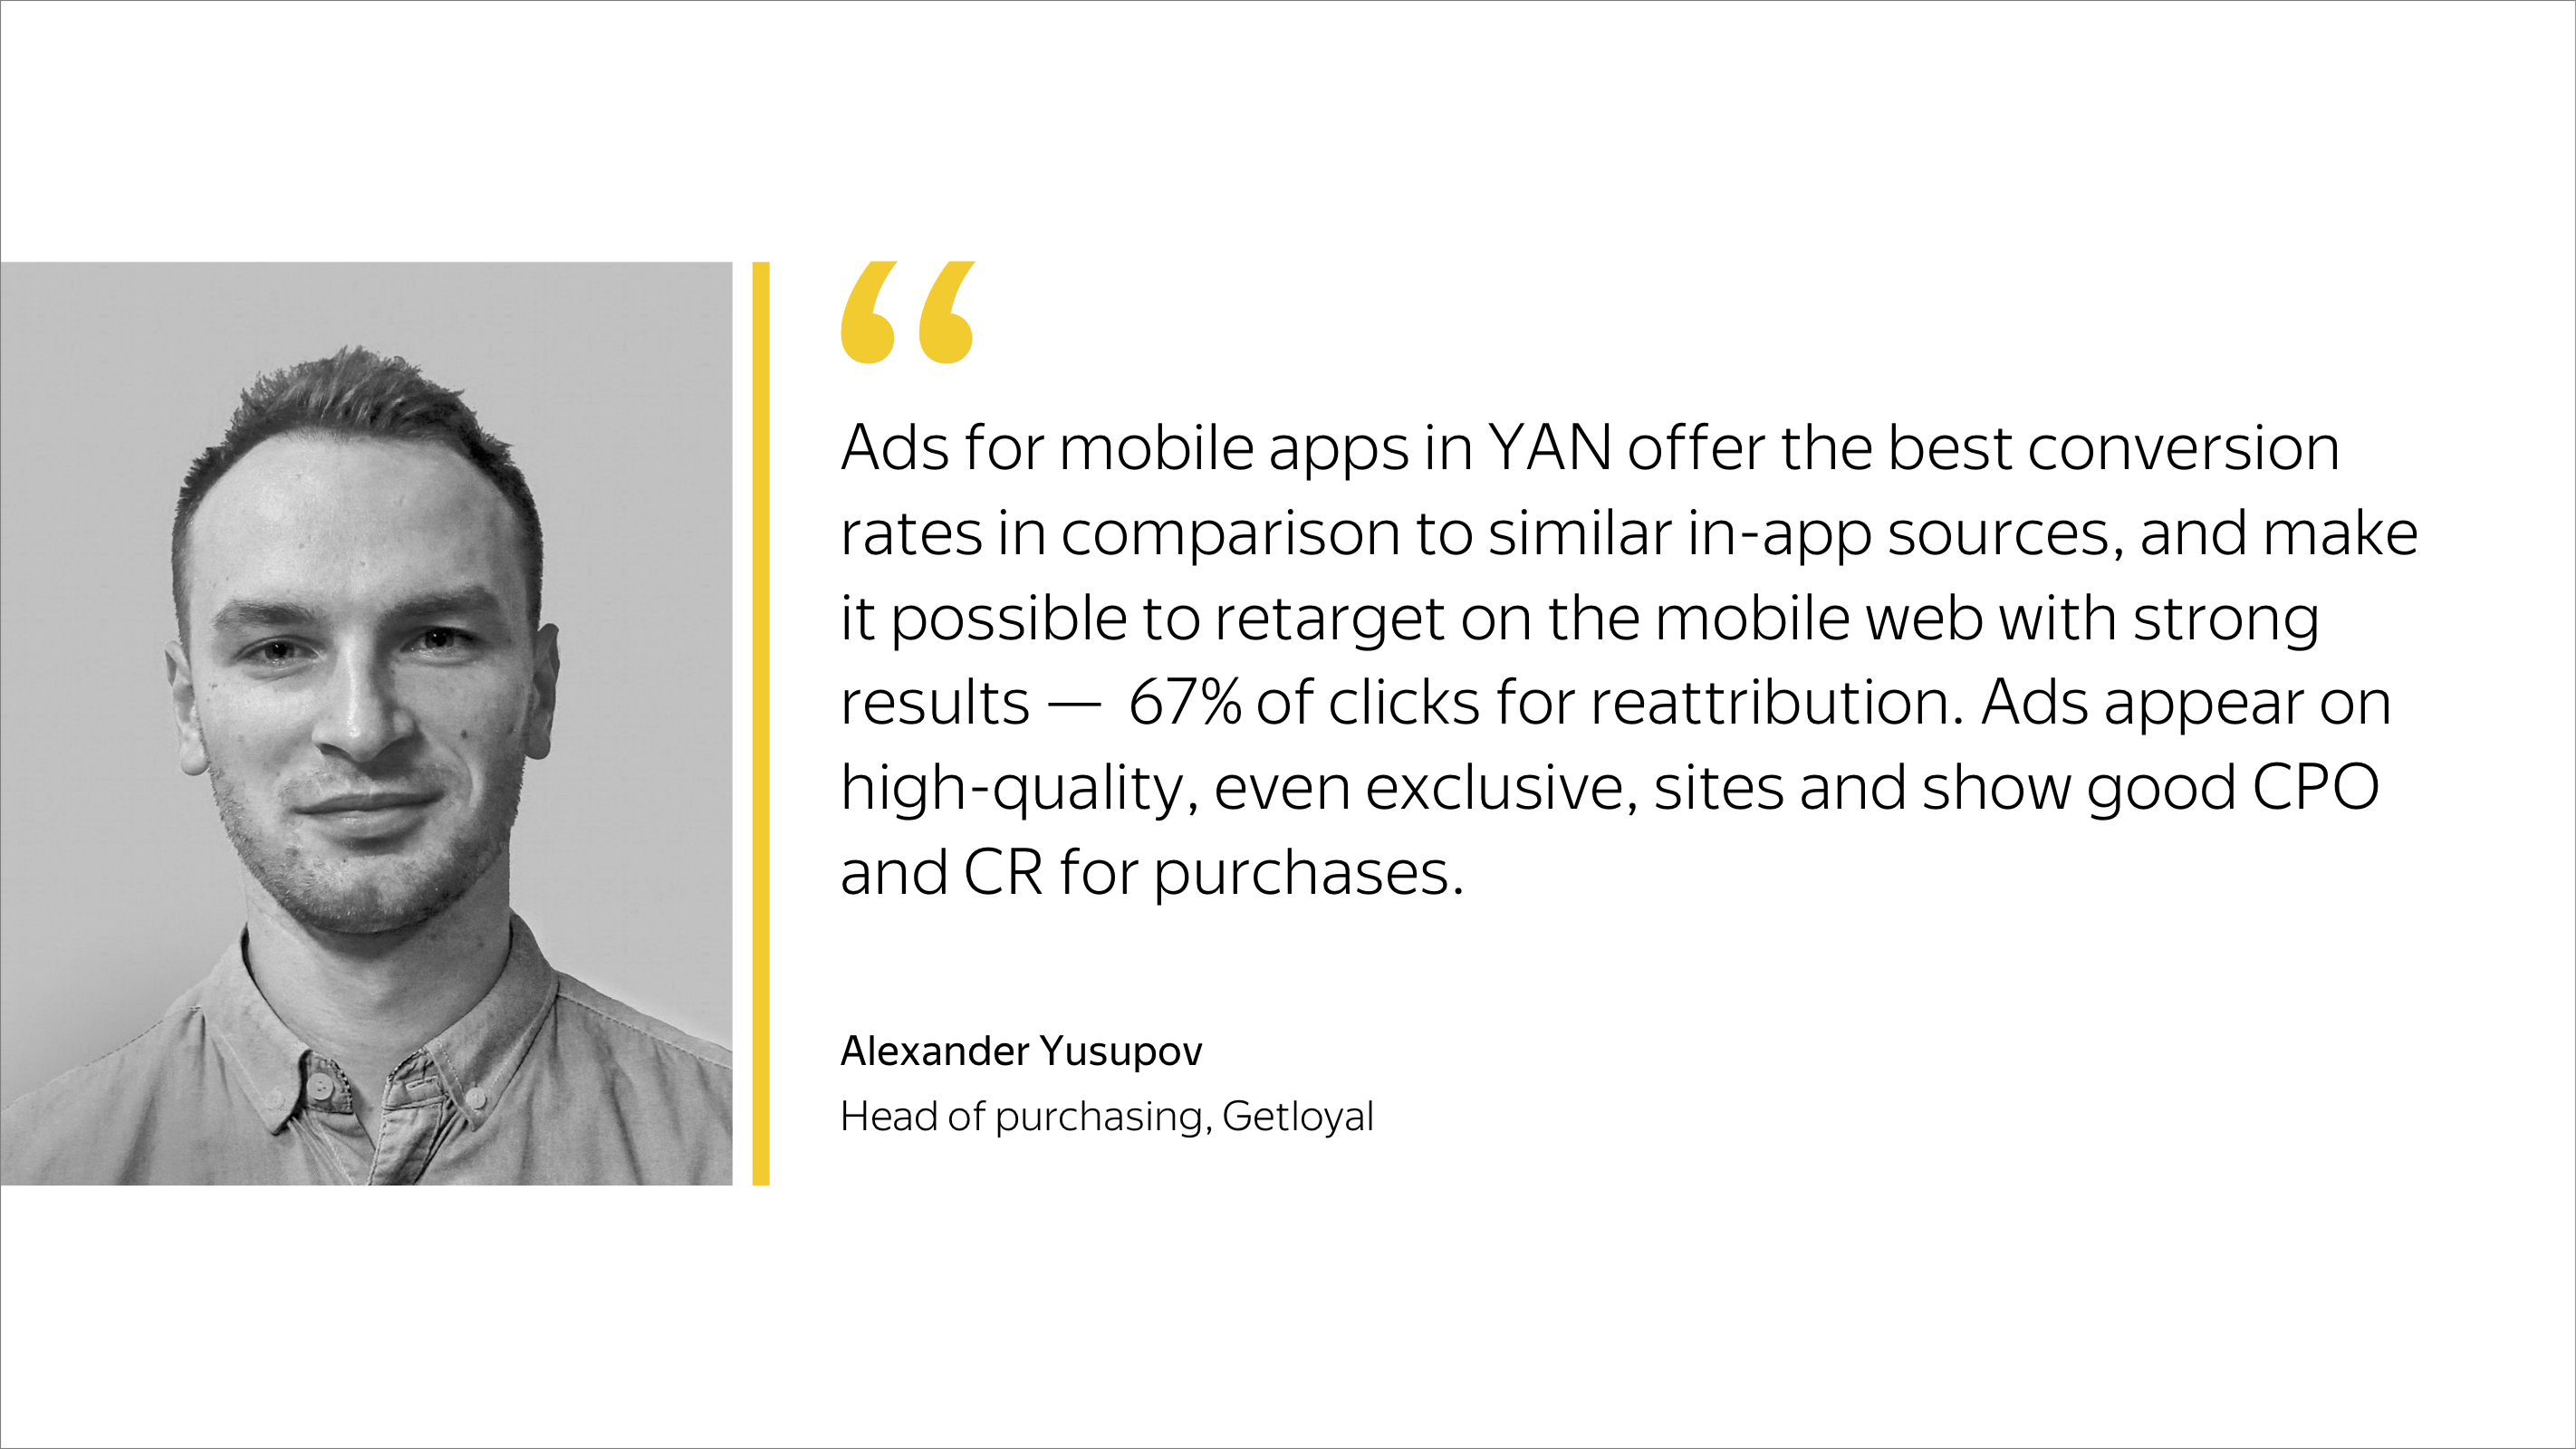 Ads for mobile apps in YAN offer the best conversion rates in comparison to similar in-app sources